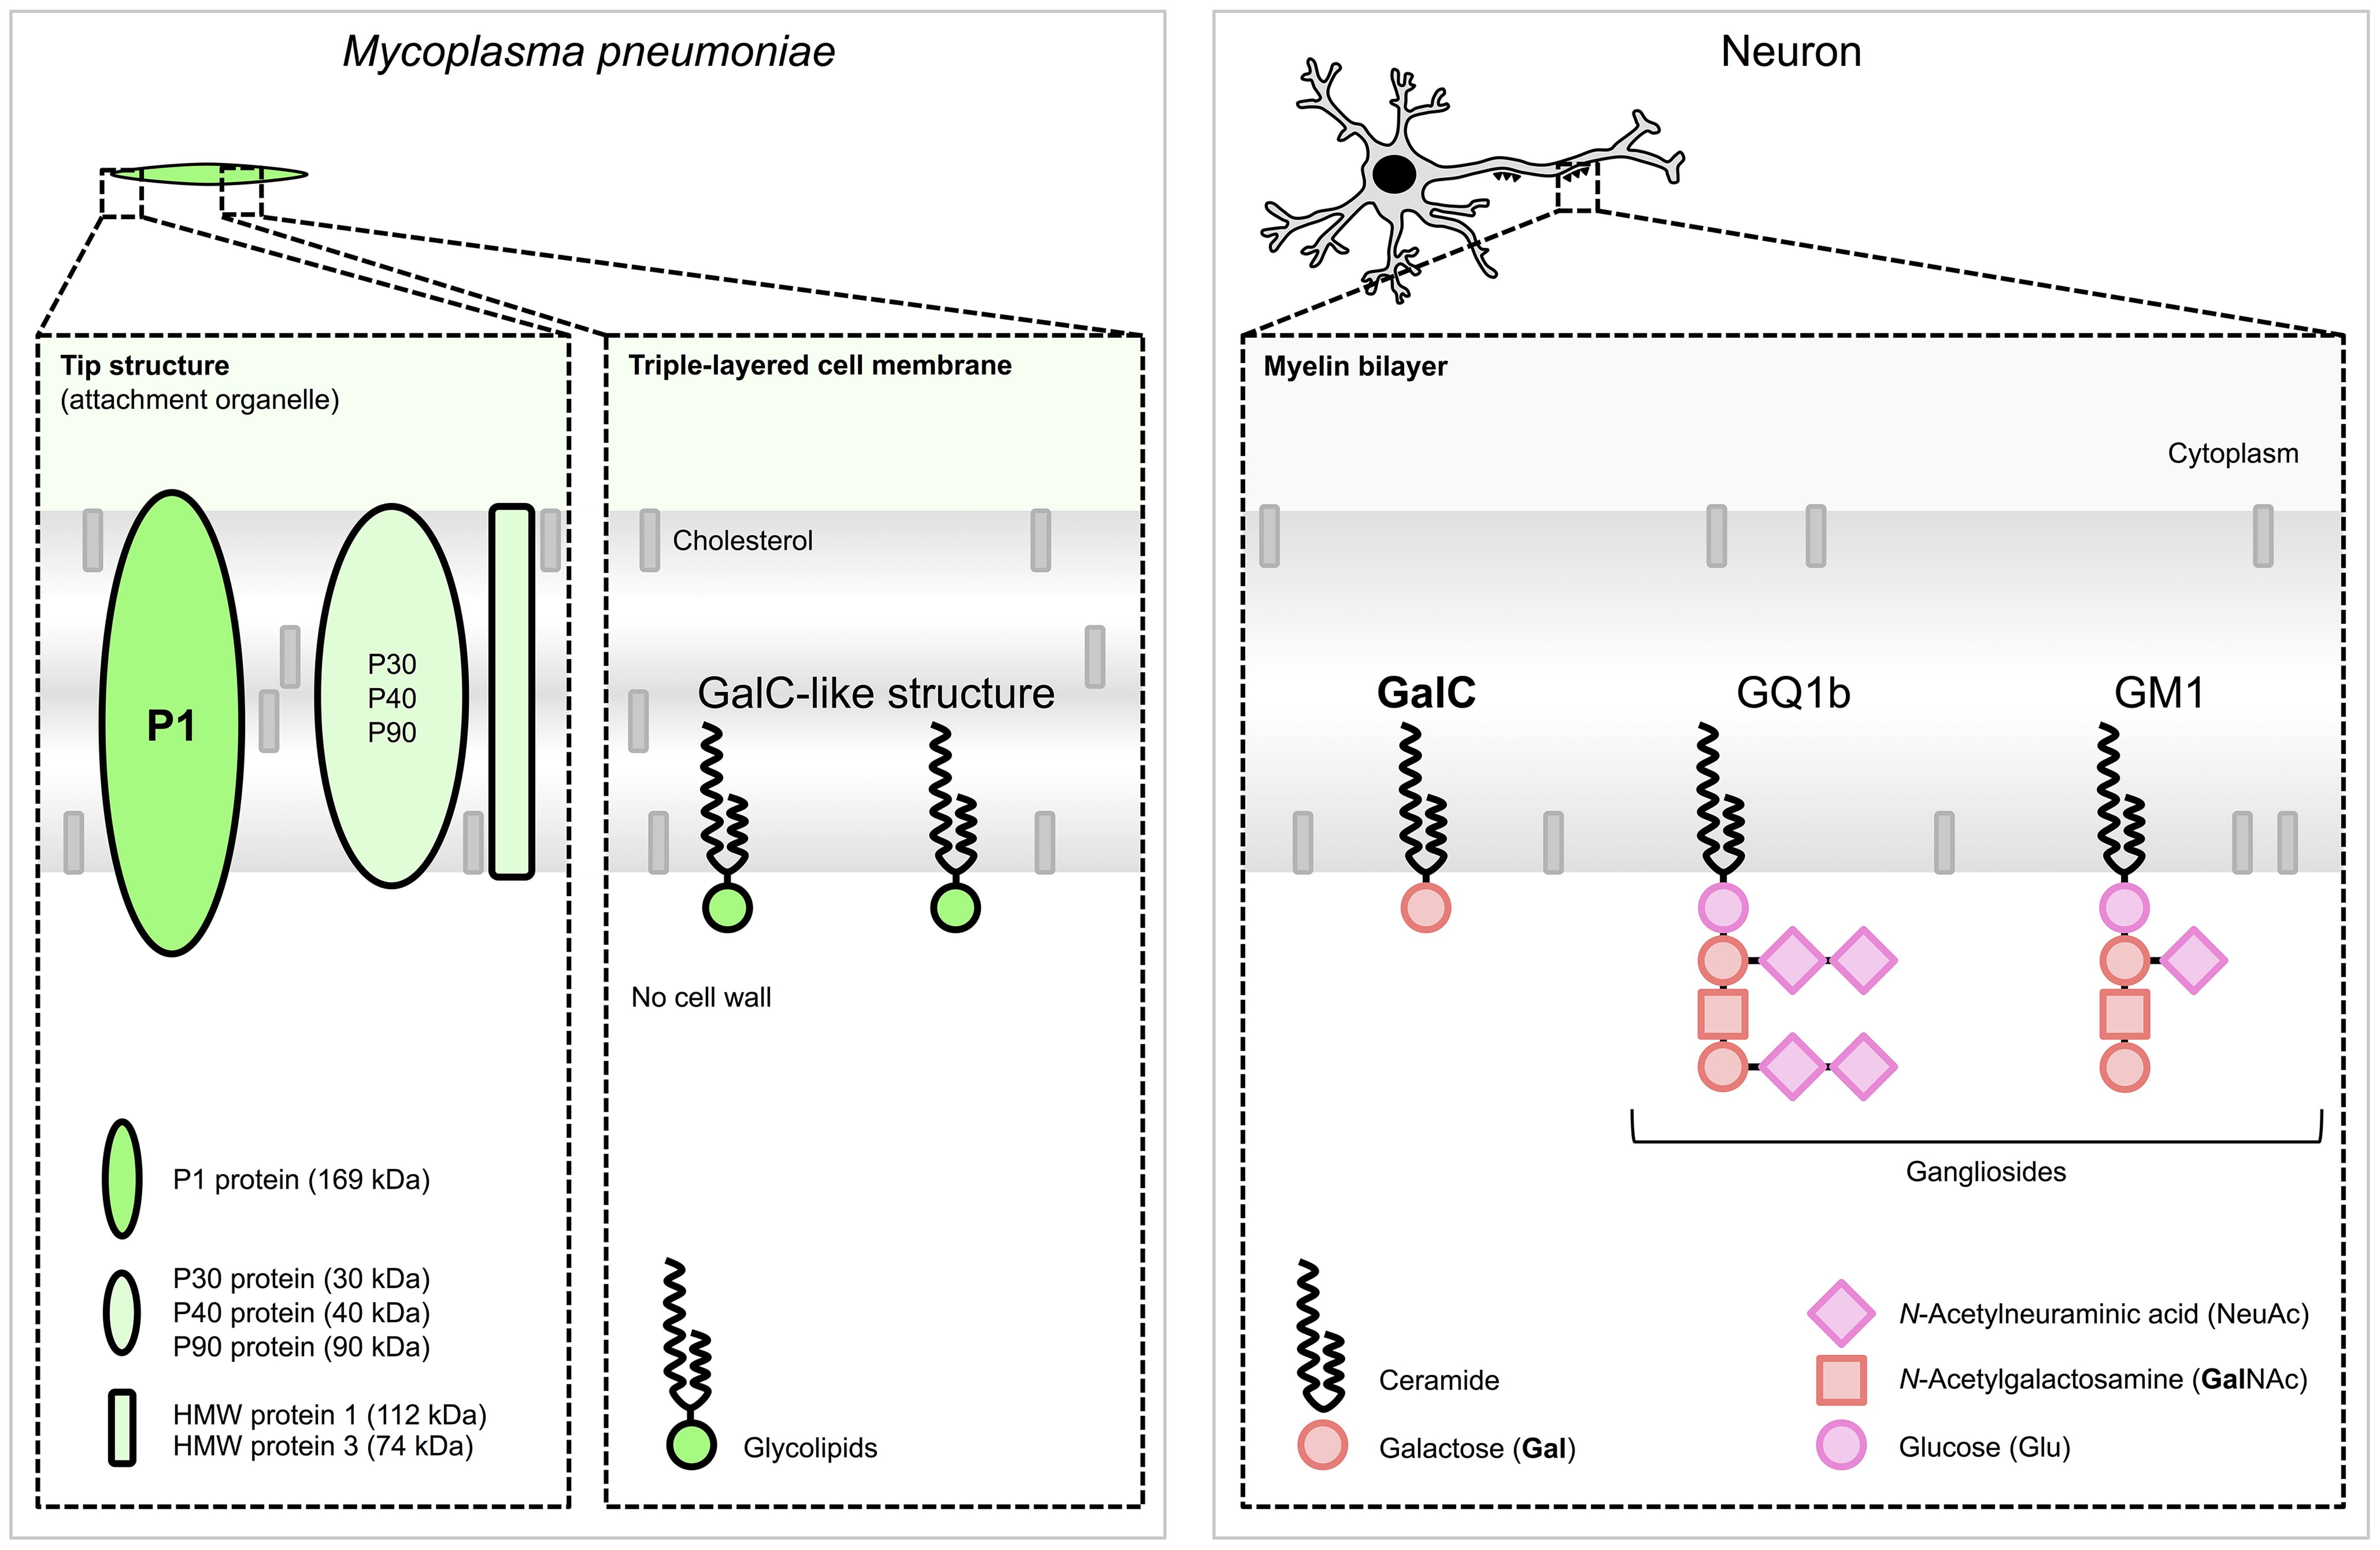 Schematic structures responsible for molecular mimicry between <i>M. pneumoniae</i> and neuronal cells.